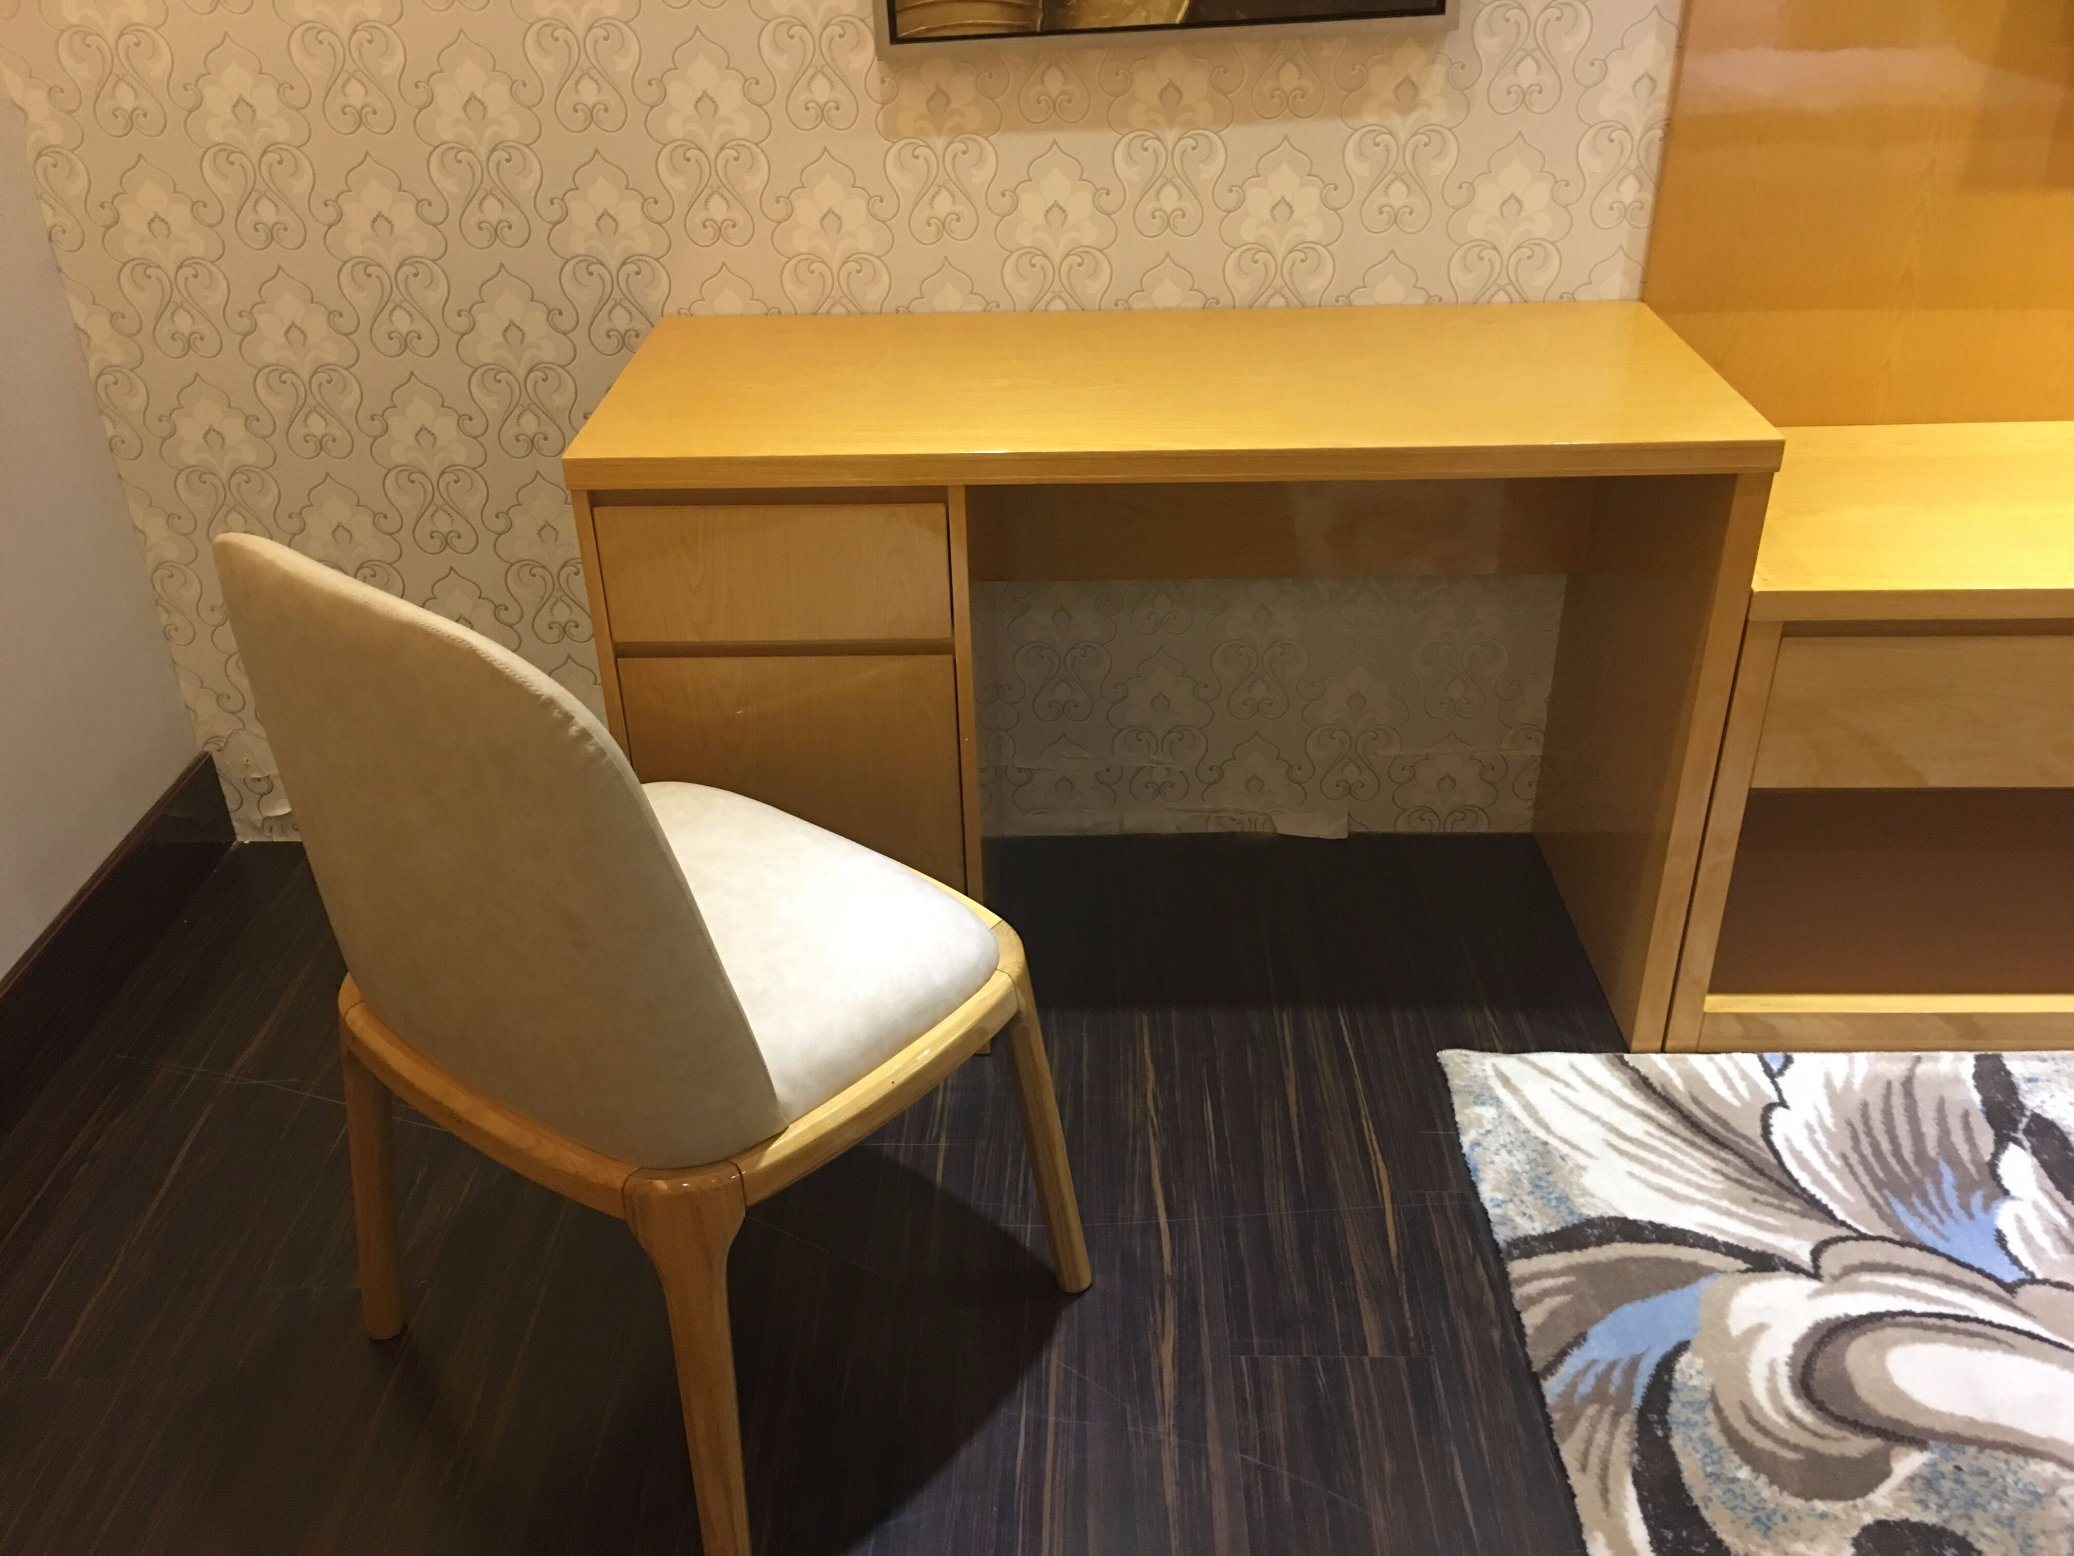 Hotel Bedroom Furniture/Luxury King Size Bedroom Furniture/Standard Hotel King Size Bedroom Suite/Kingsize Hospitality Guest Room Furniture (NCHB-00316)